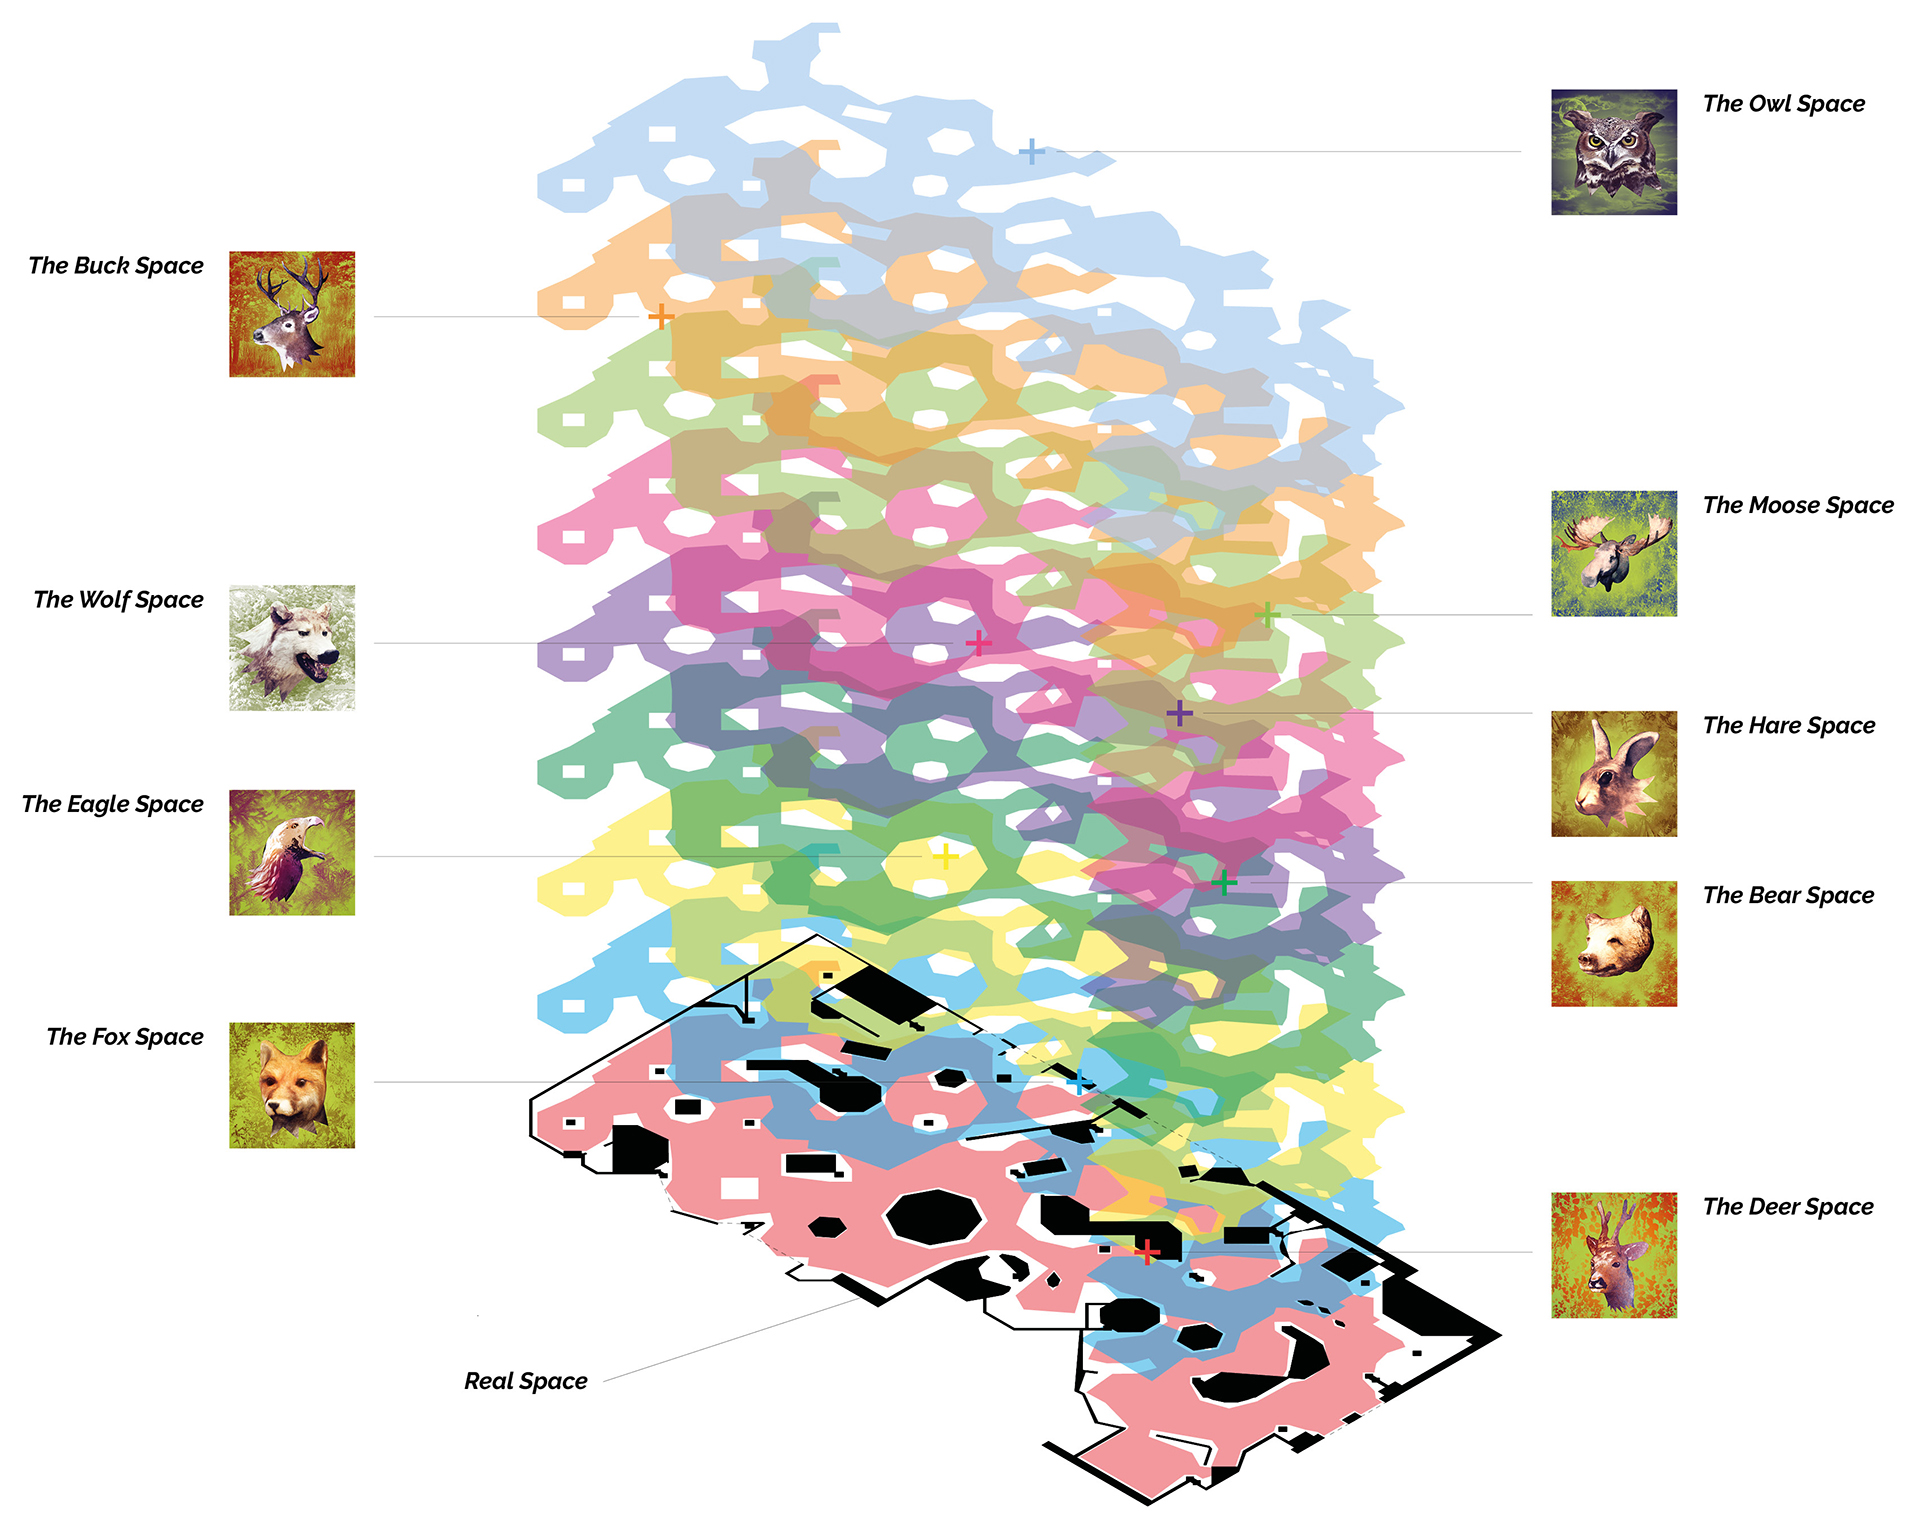 The virtual spaces with their instantiation points overlaid atop the real space. One important learning from this process is the need for a shared language to talk about multi-layered spatialities. We named the virtual spaces after their respective animals.